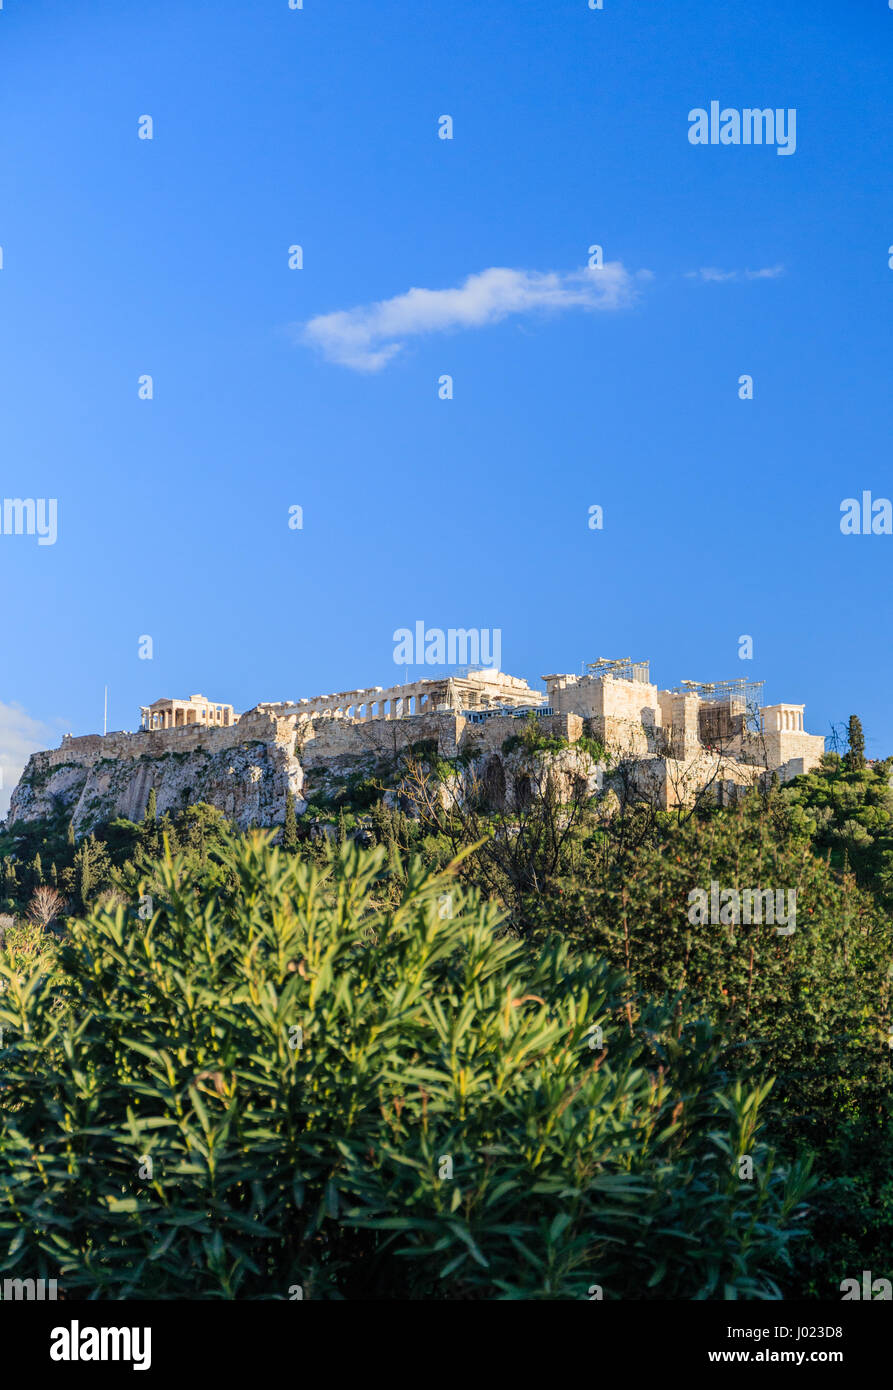 Cloud over the Acropolis in Athens (Greece) Stock Photo